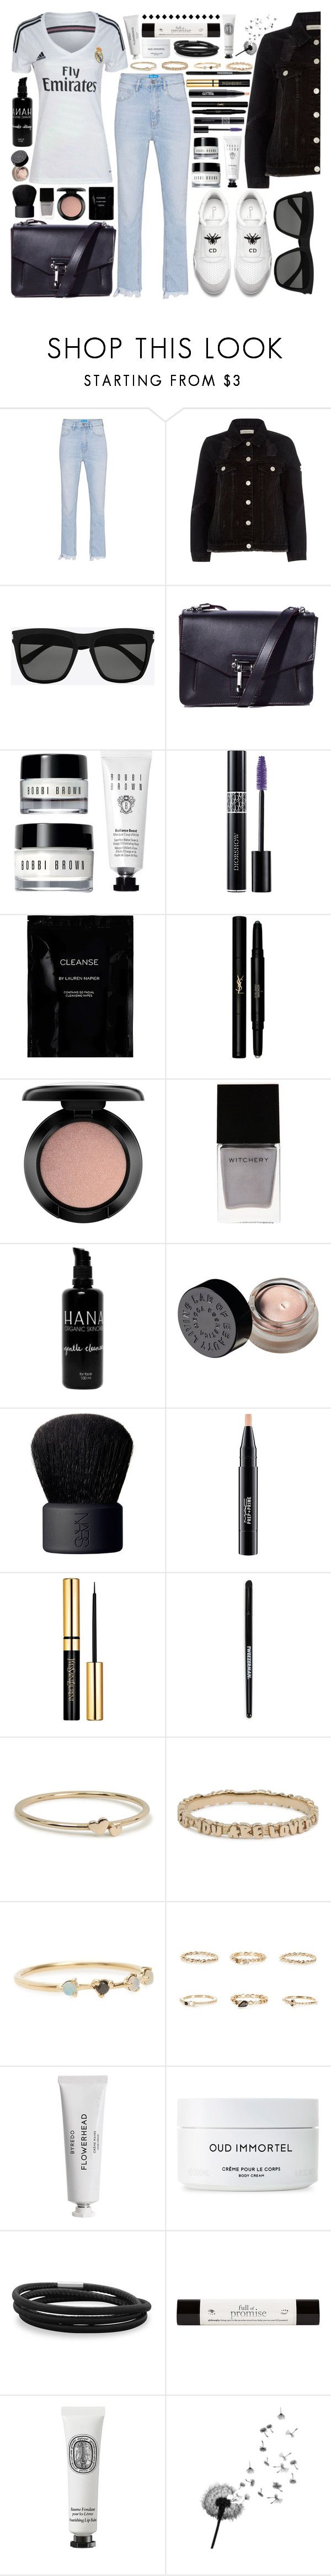 """""""Tonight's game"""" by carolsposito ❤ liked on Polyvore featuring M.i.h Jeans, River Island, Yves Saint Laurent, Proenza Schouler, Christian Dior, Cleanse by Lauren Napier, MAC Cosmetics, Witchery, SkinCare and NARS Cosmetics"""